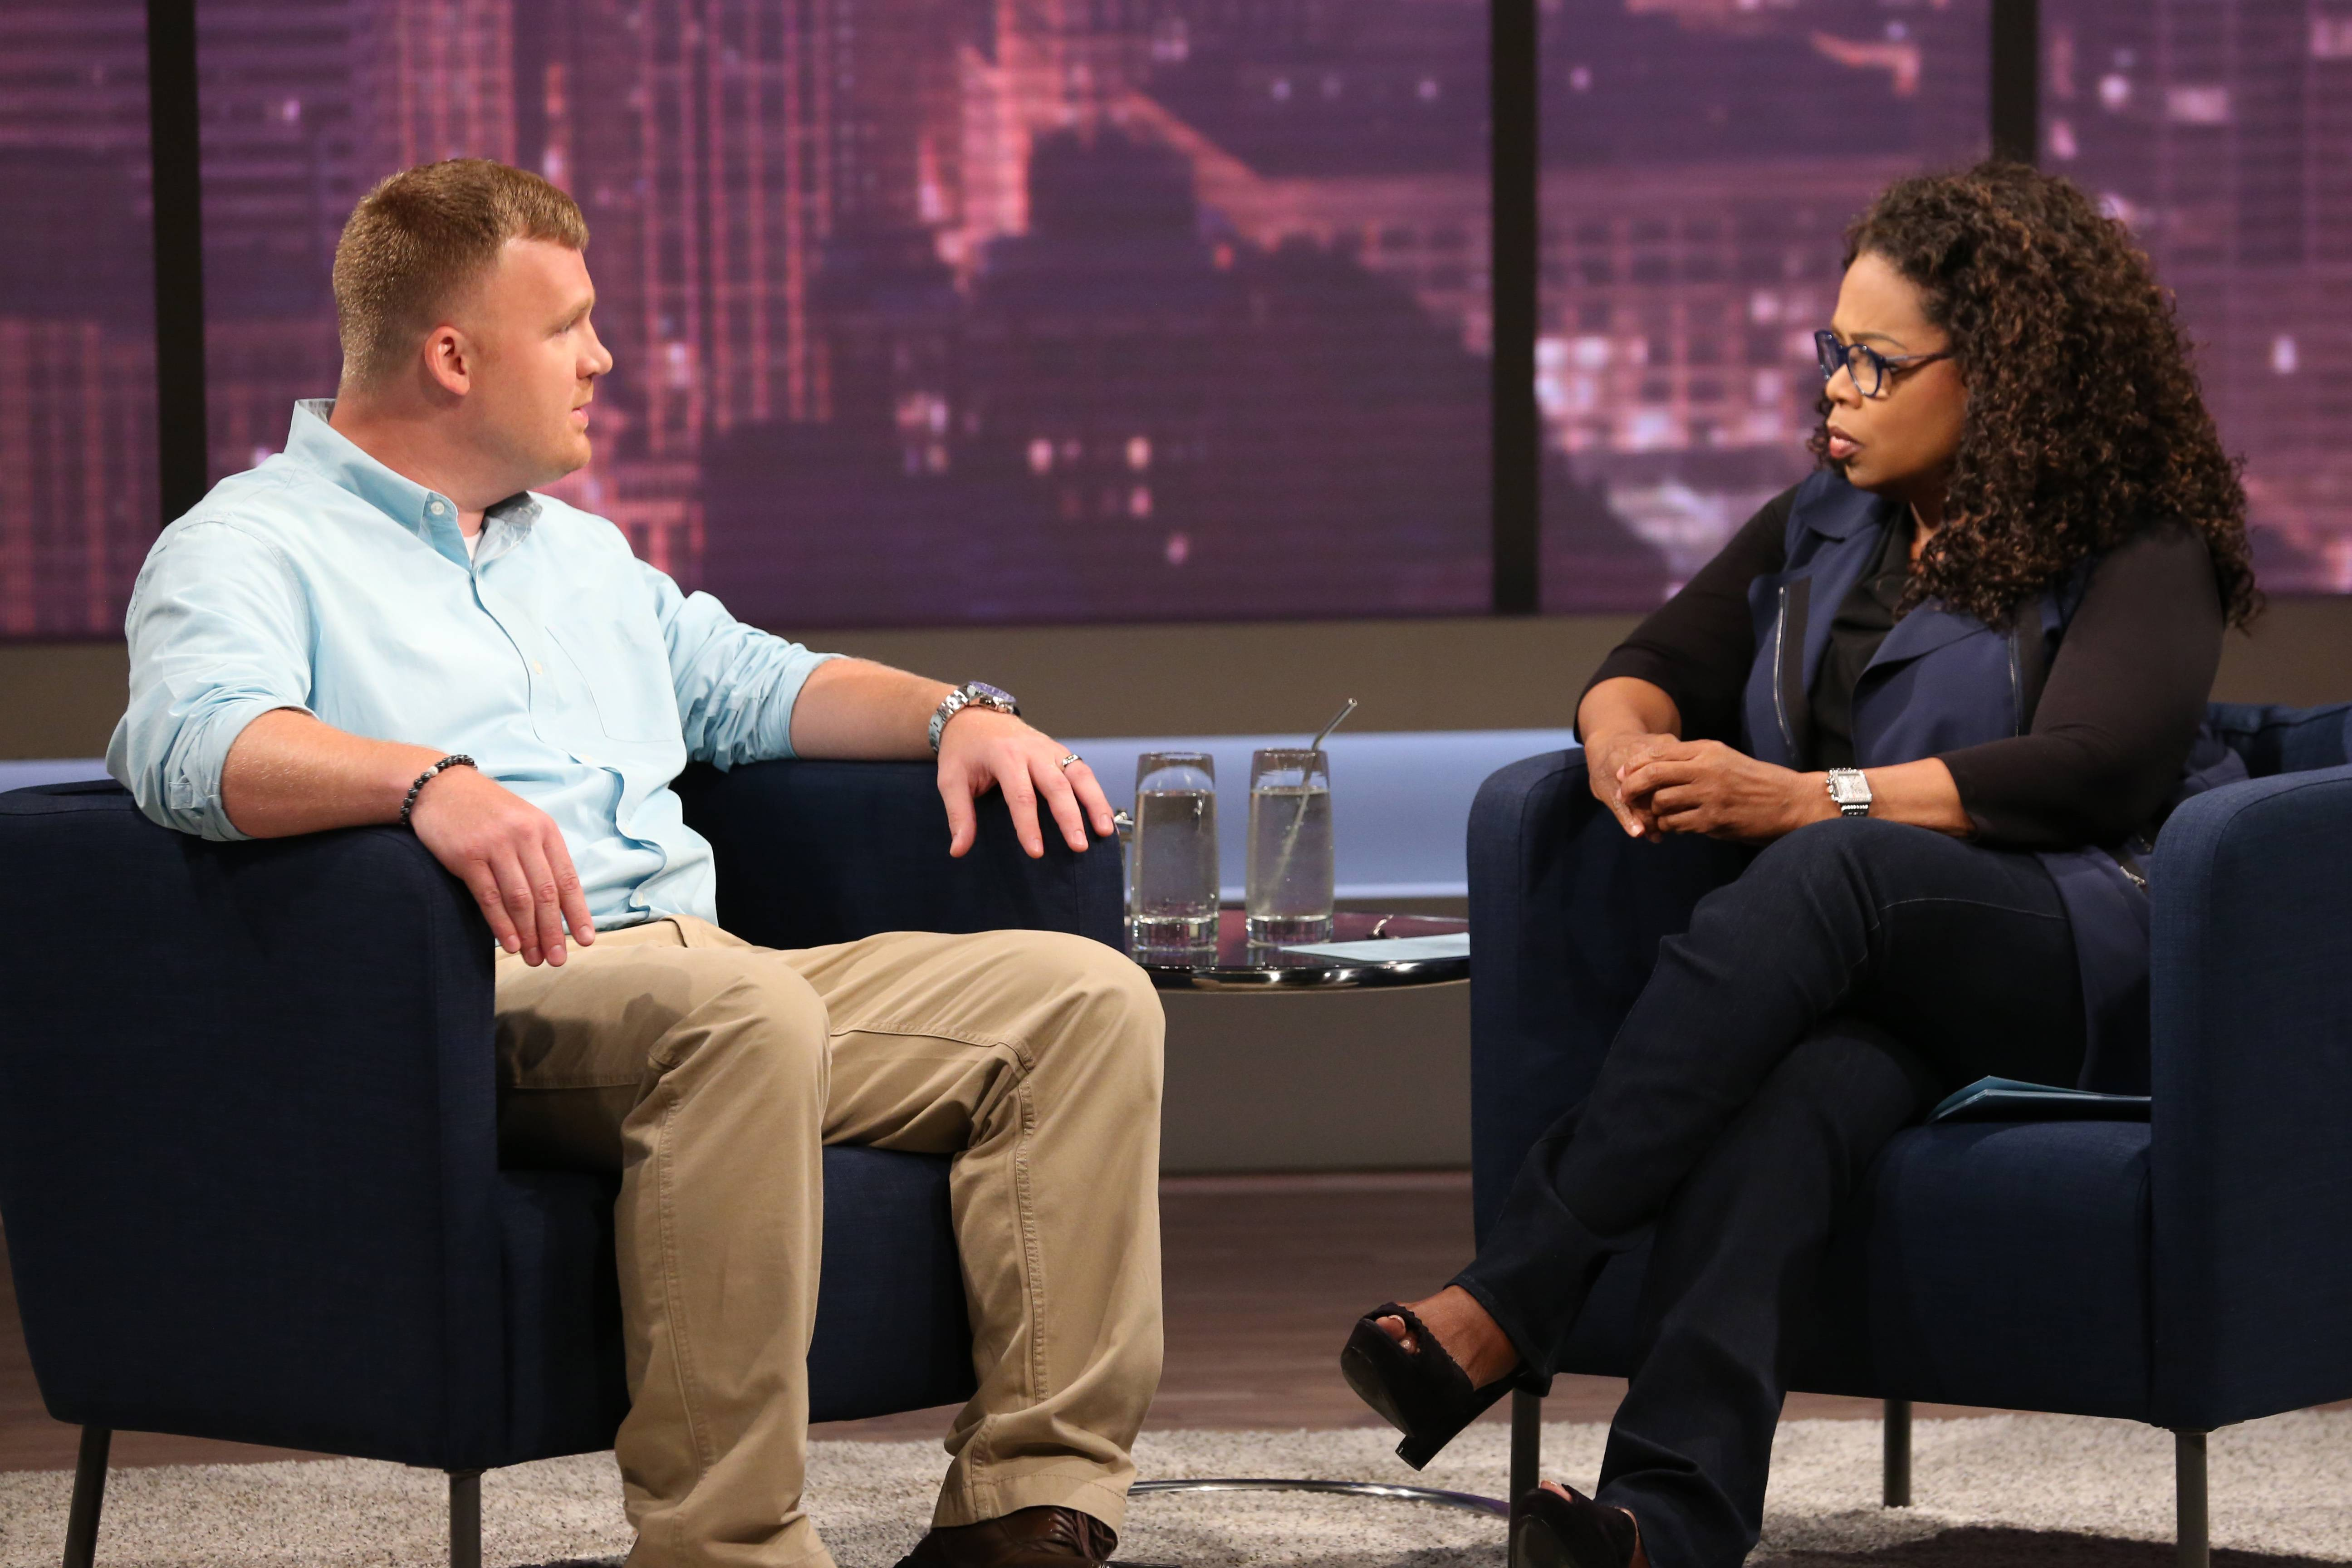 Matt Sandusky, the adopted son of former Penn State University assistant football coach Jerry Sandusky, during an interview with Oprah Winfrey, airing on OWN on Thursday, July 17.